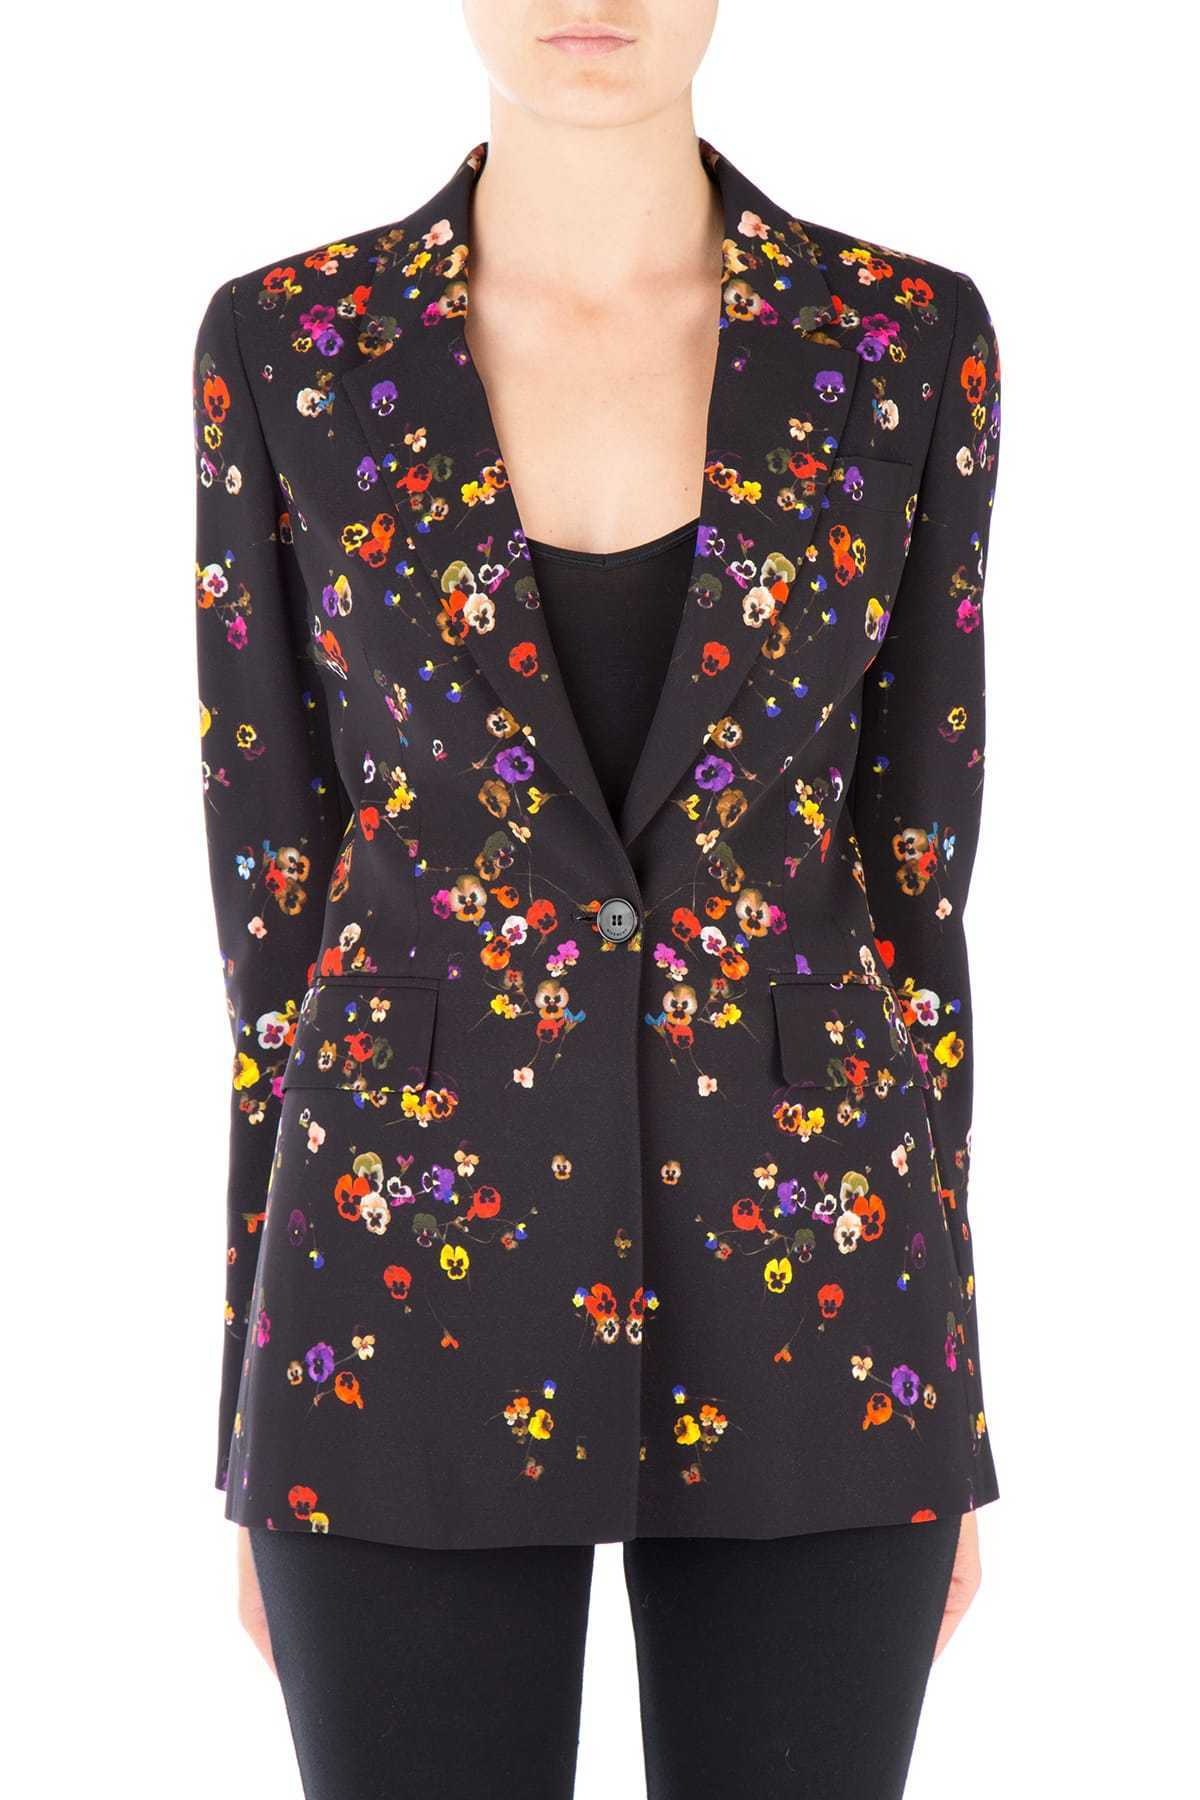 17-18AW G157 FLOWER PRINTED JACKET